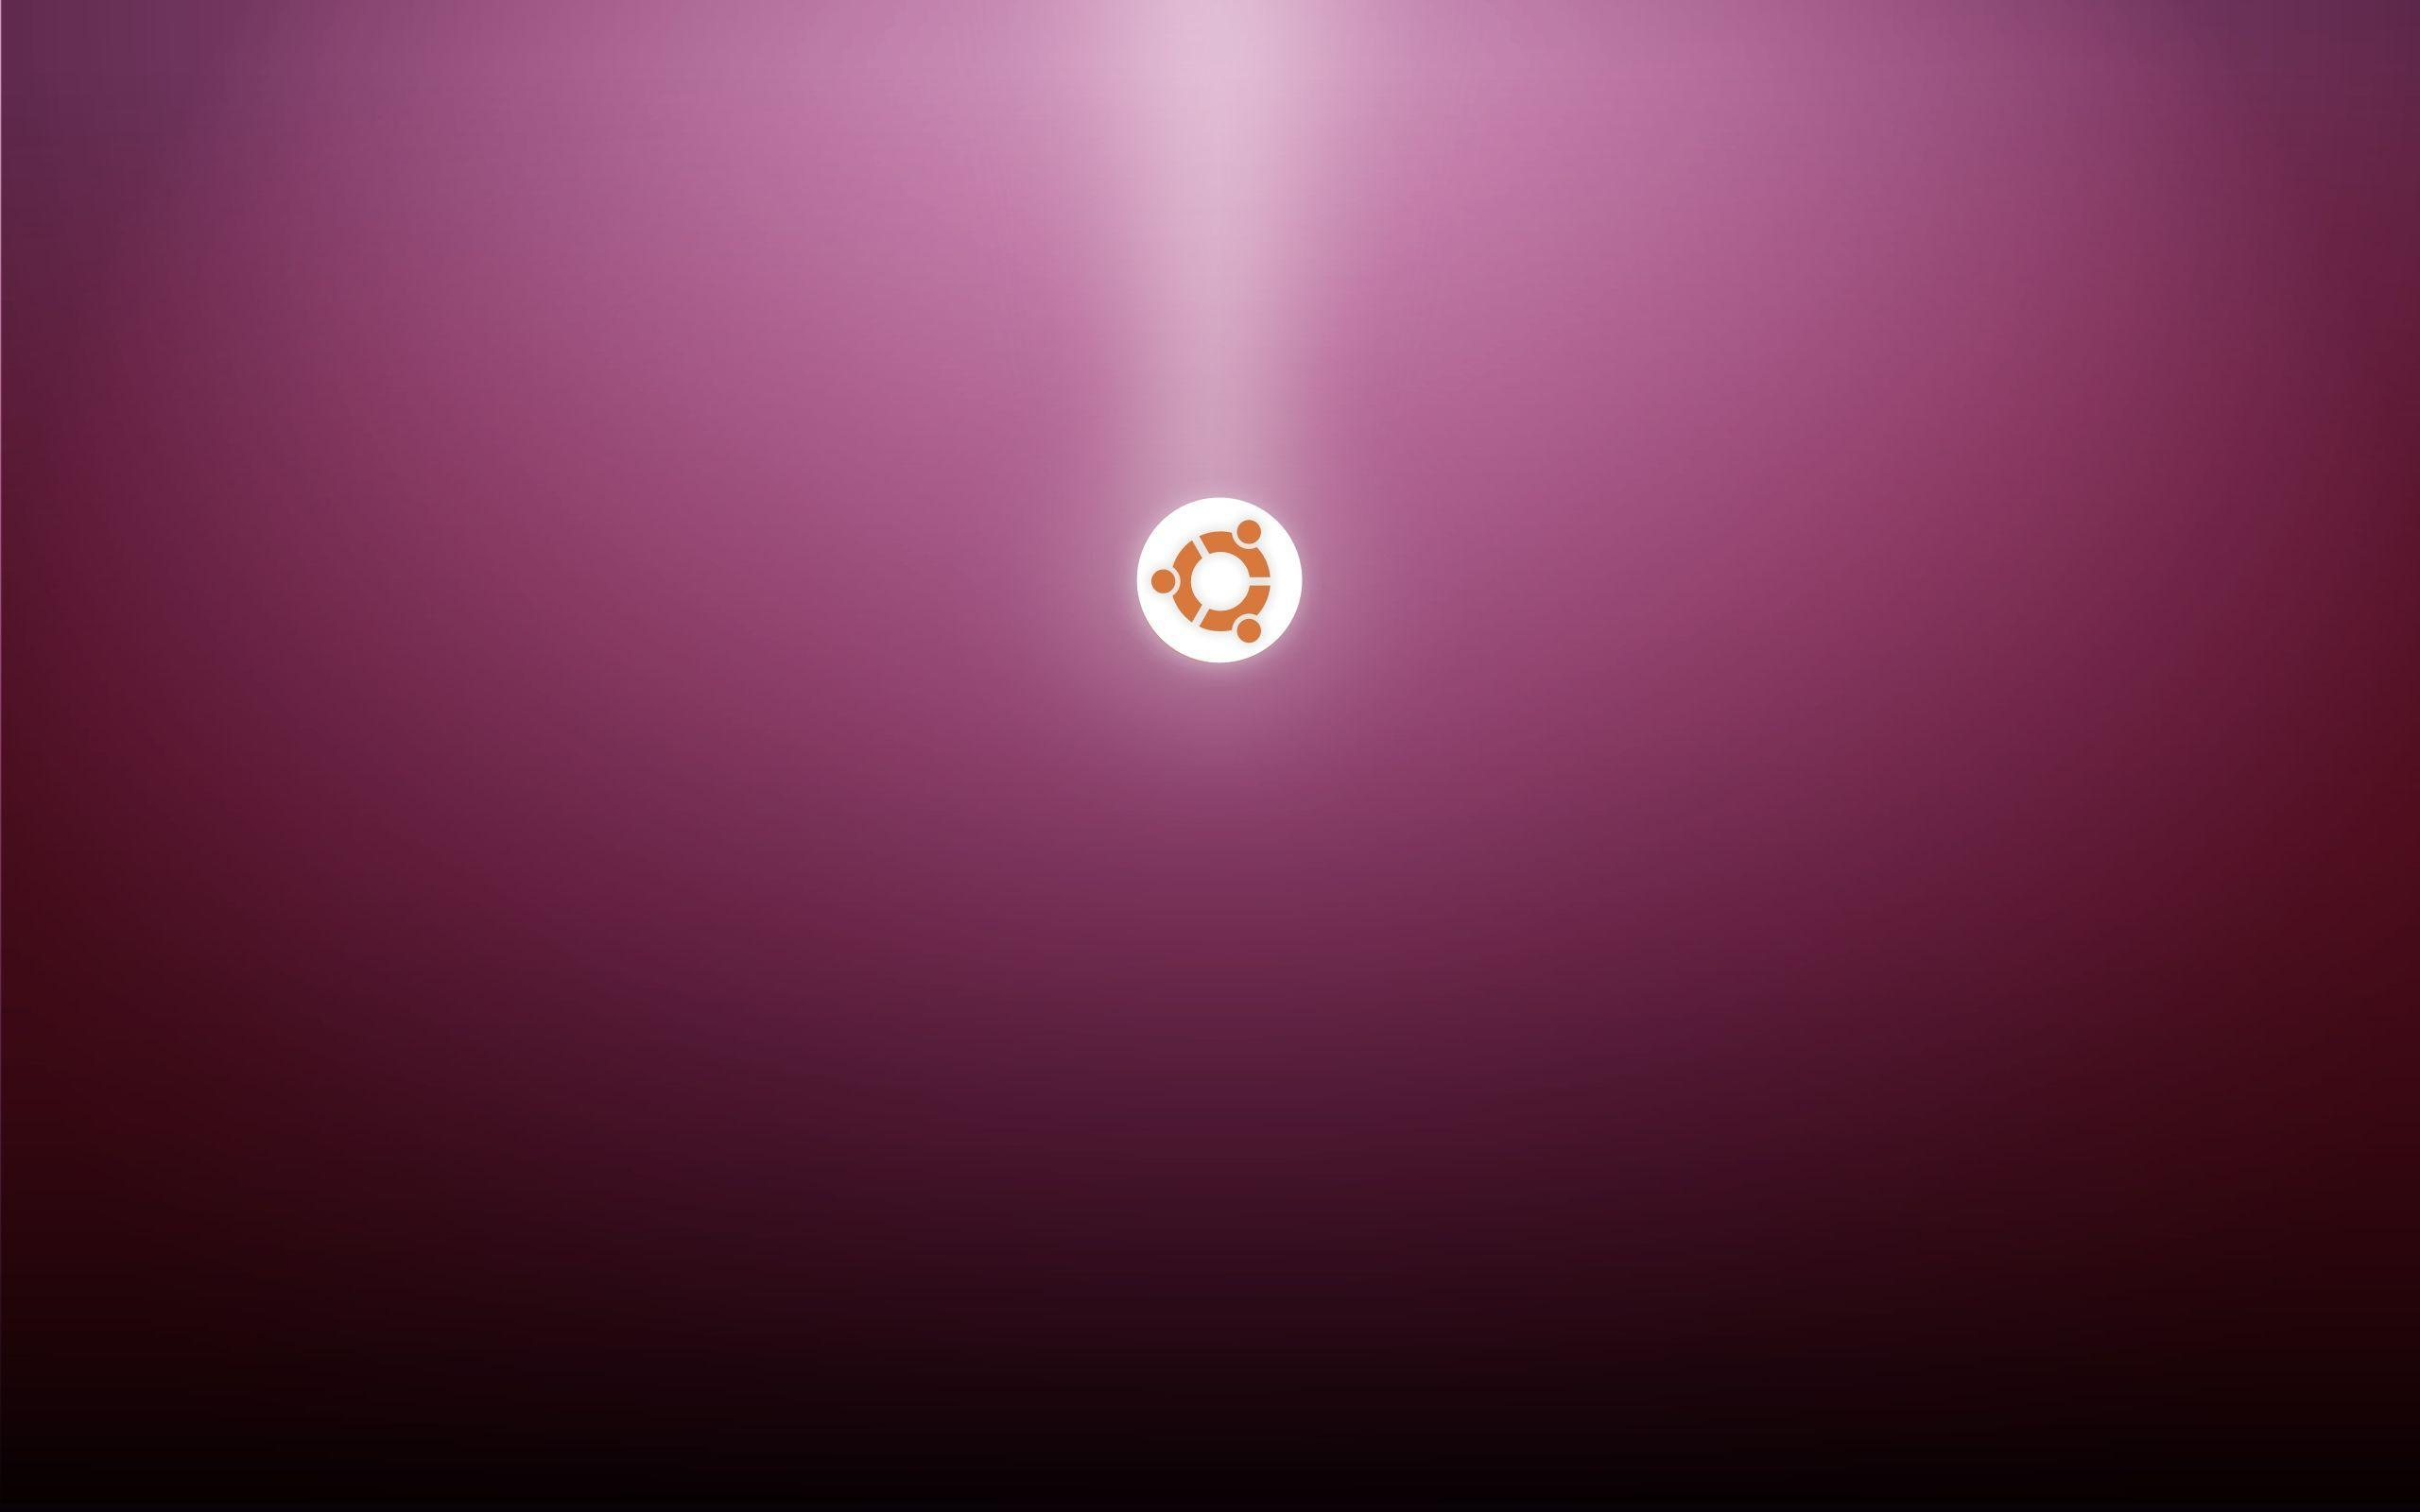 Ubuntu Wallpapers Location 2560x1600